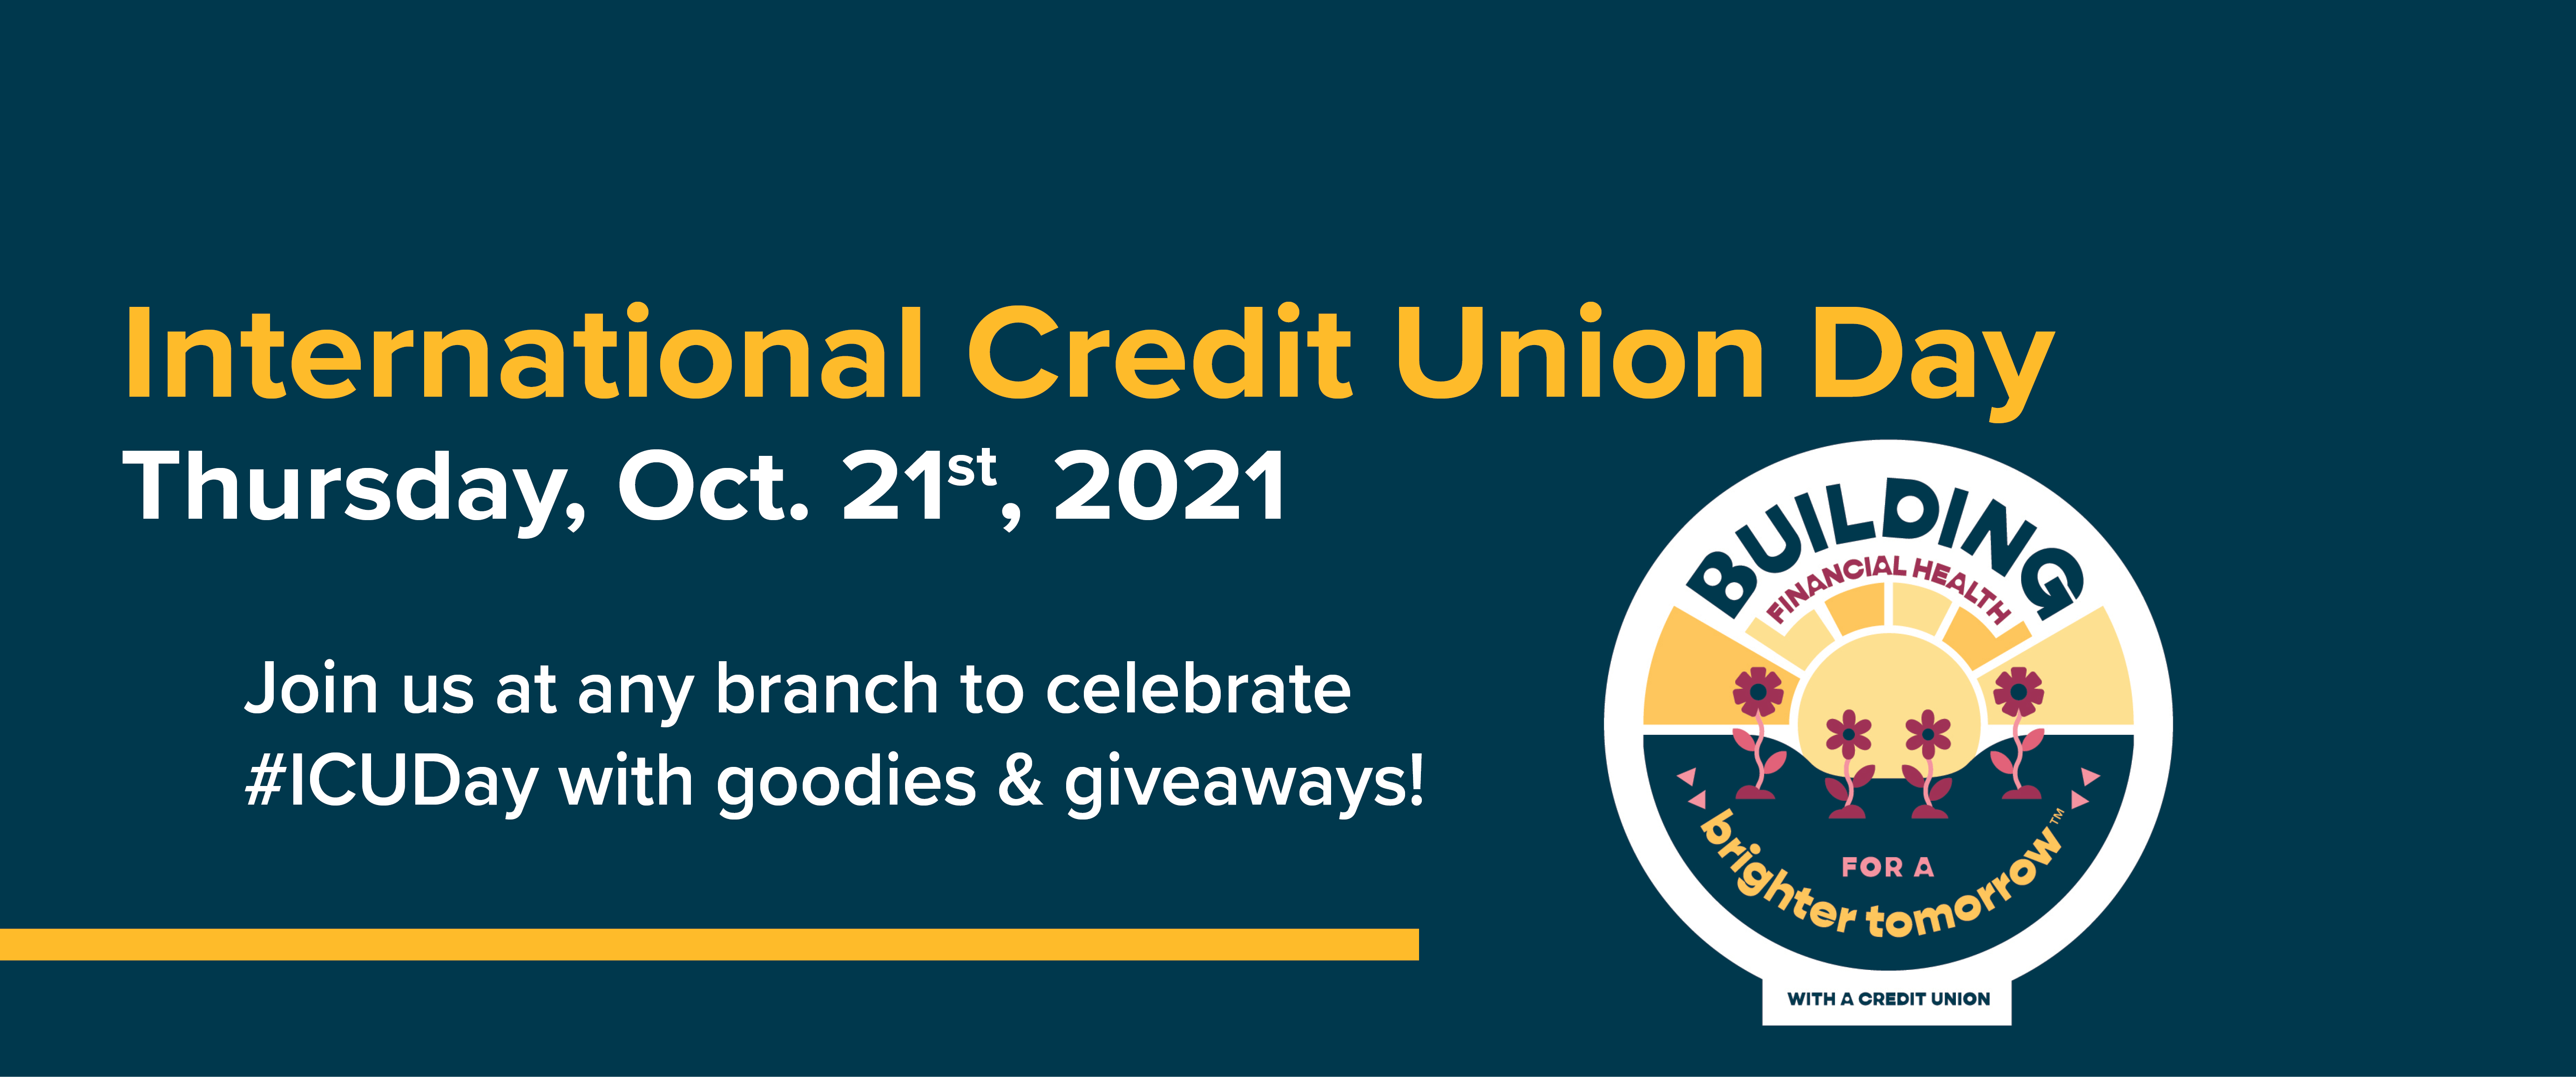 International Credit Union Day Thursday, Oct 21st 2021 Join us at any branch to celebrate #ICUDay with goodies & giveaways!